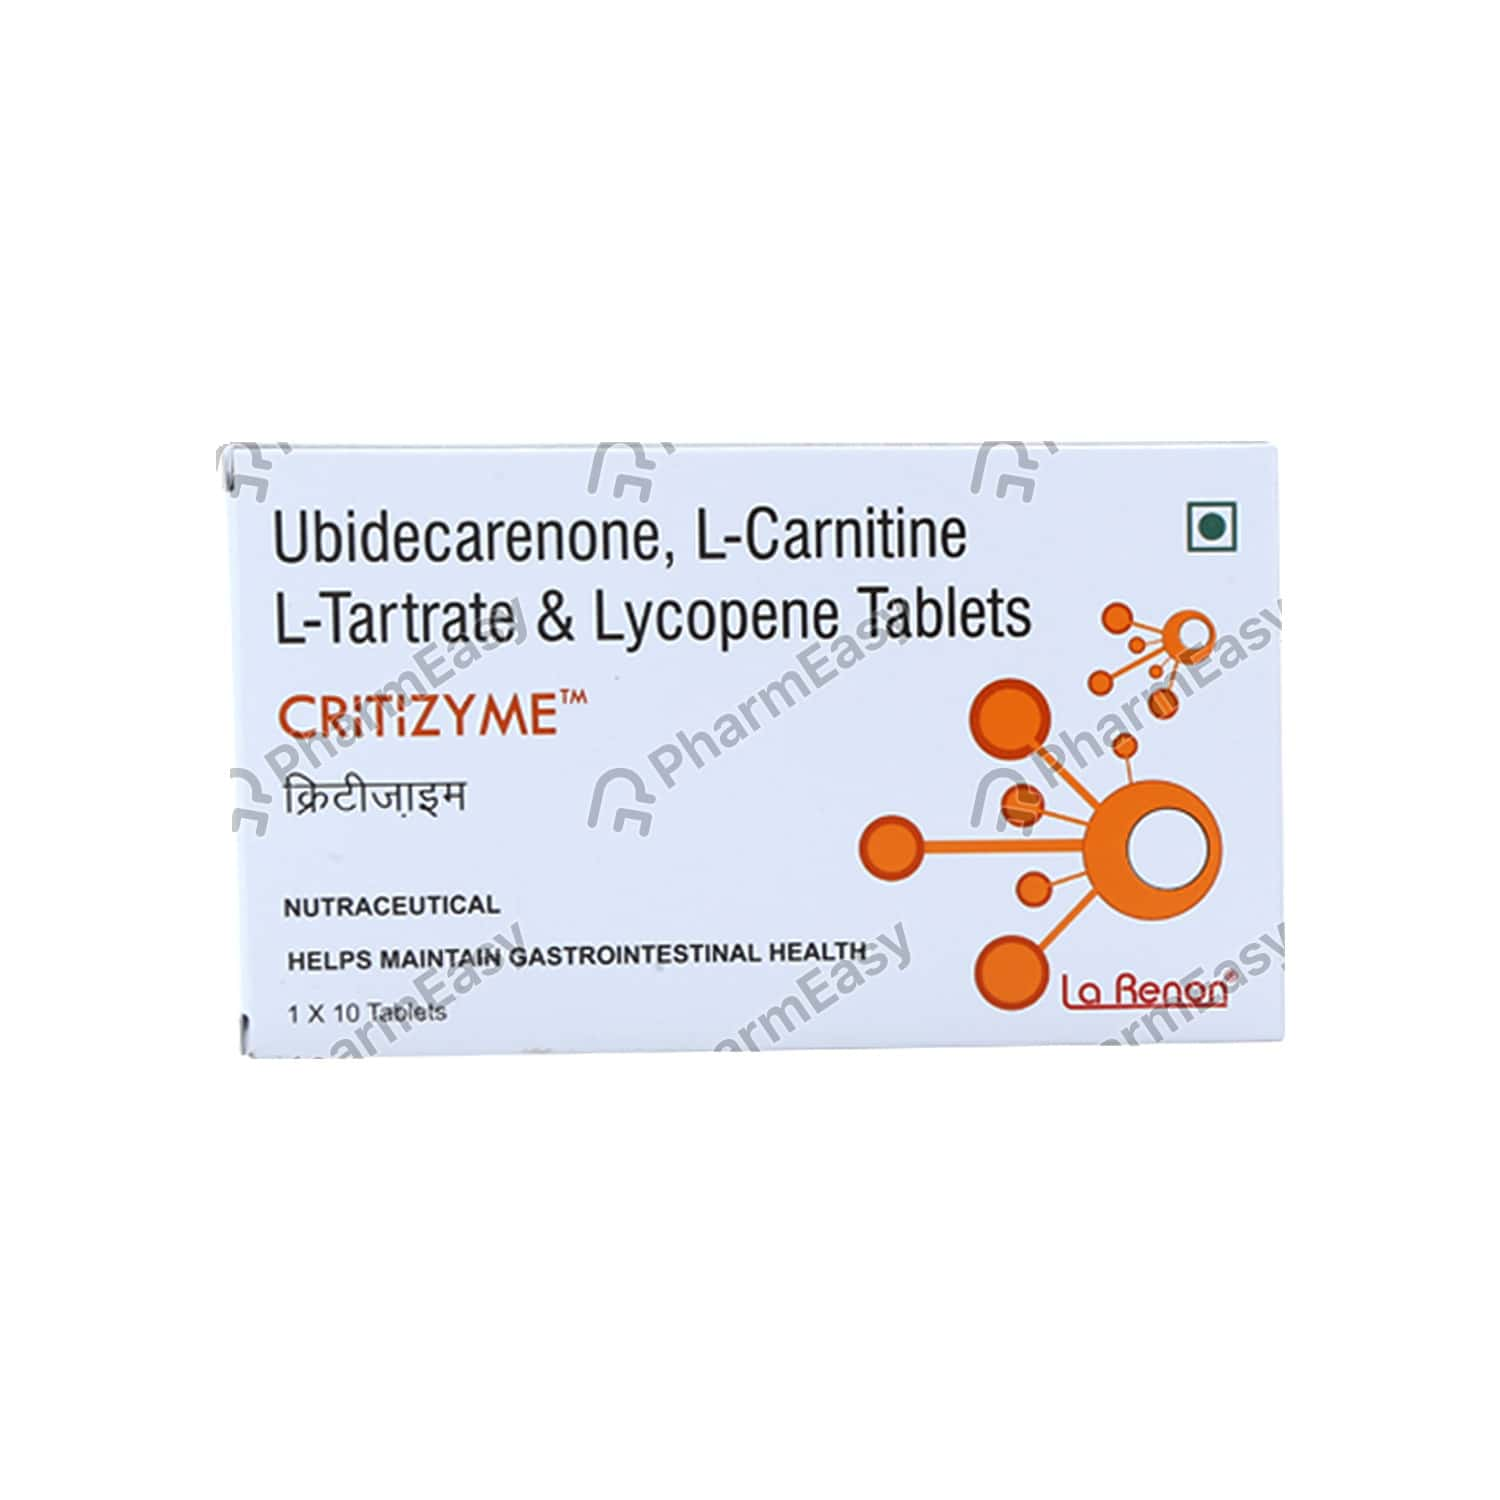 Critizyme Strip Of 10 Tablets